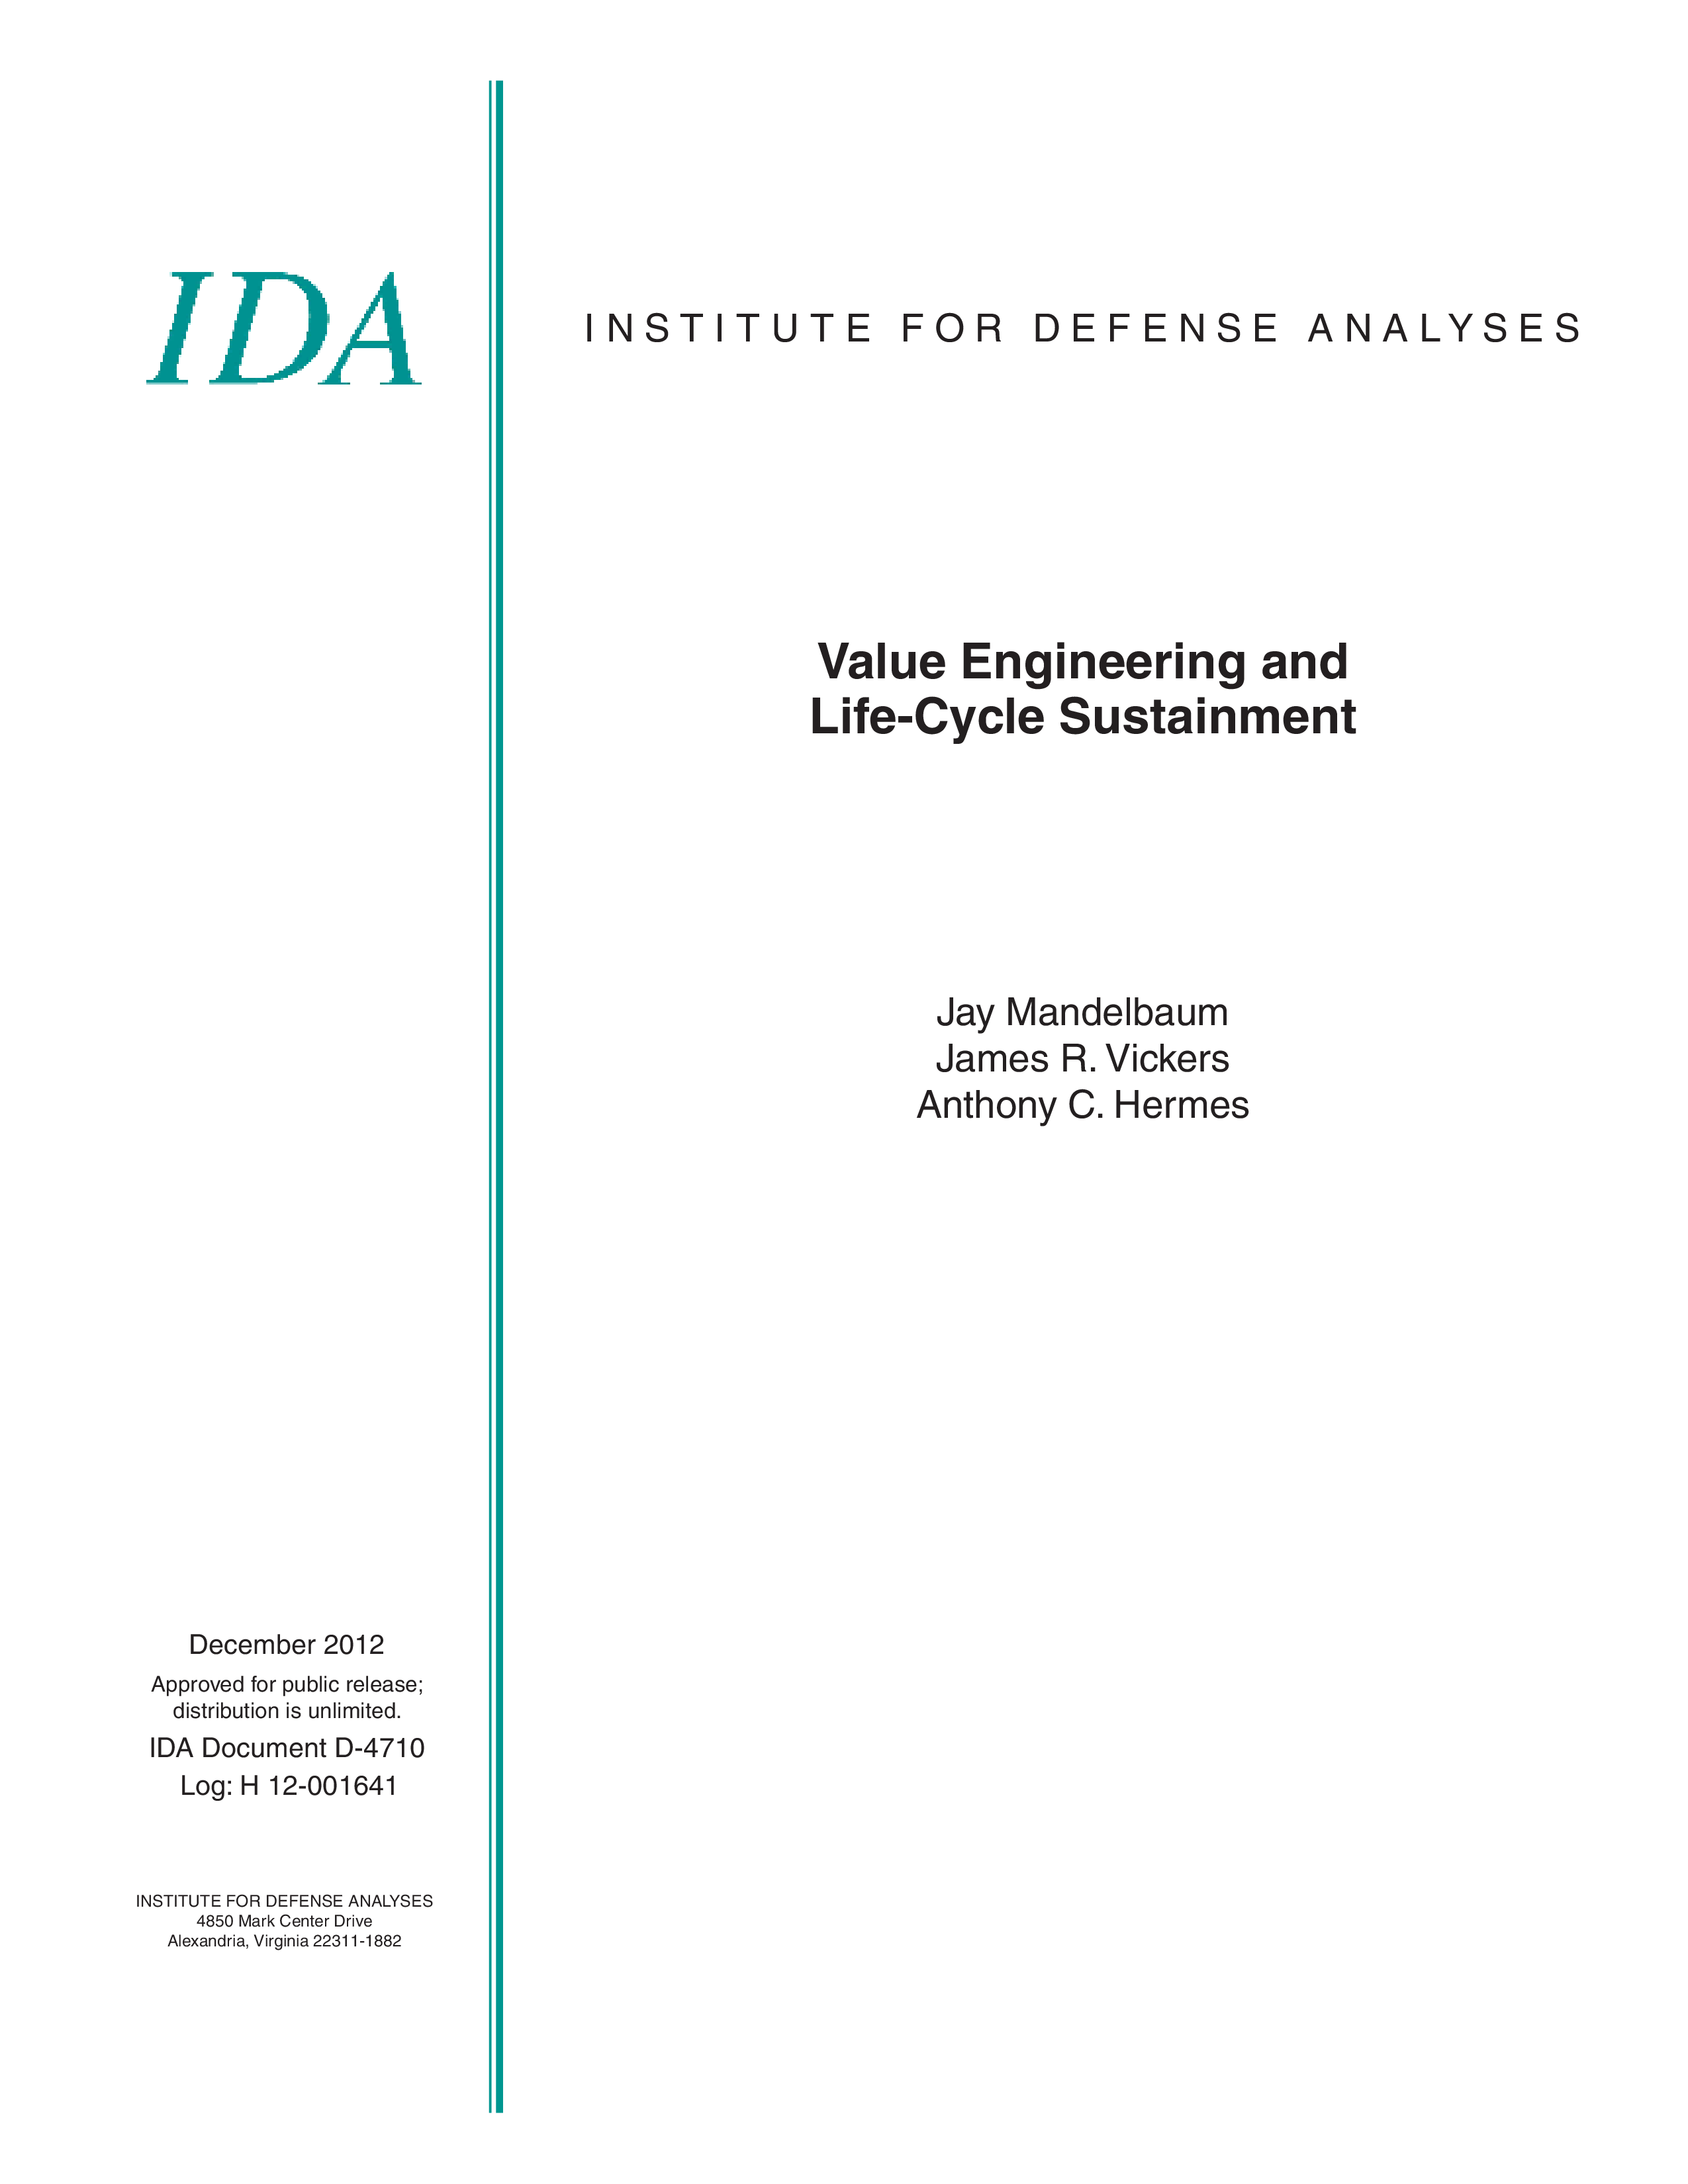 Value Engineering and Life-Cycle Sustainment